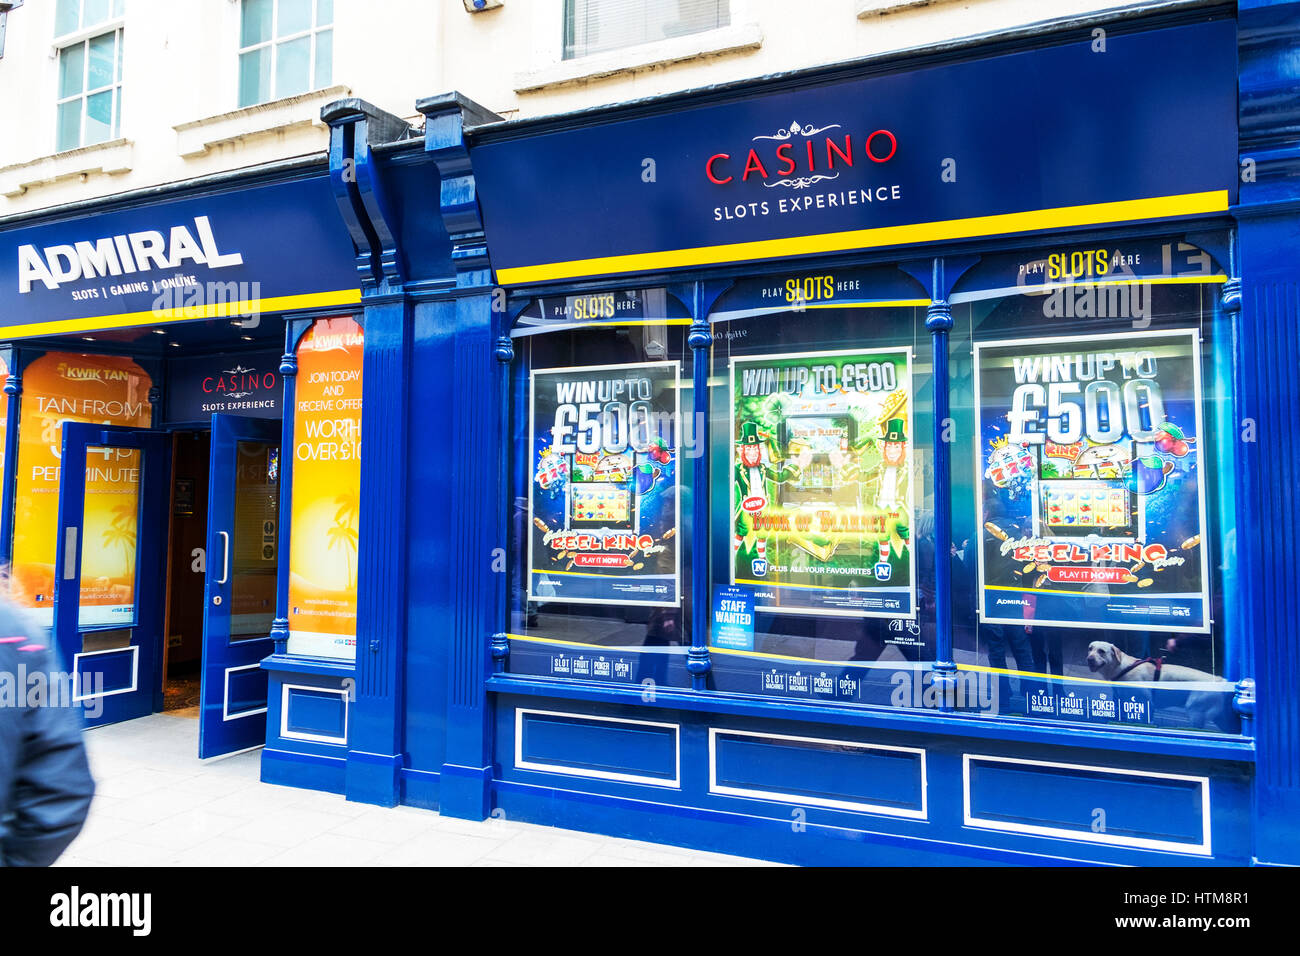 Machine à sous slots casino Admiral Admiral arcade arcade jeu slots Admiral casino casinos UK Angleterre high Photo Stock